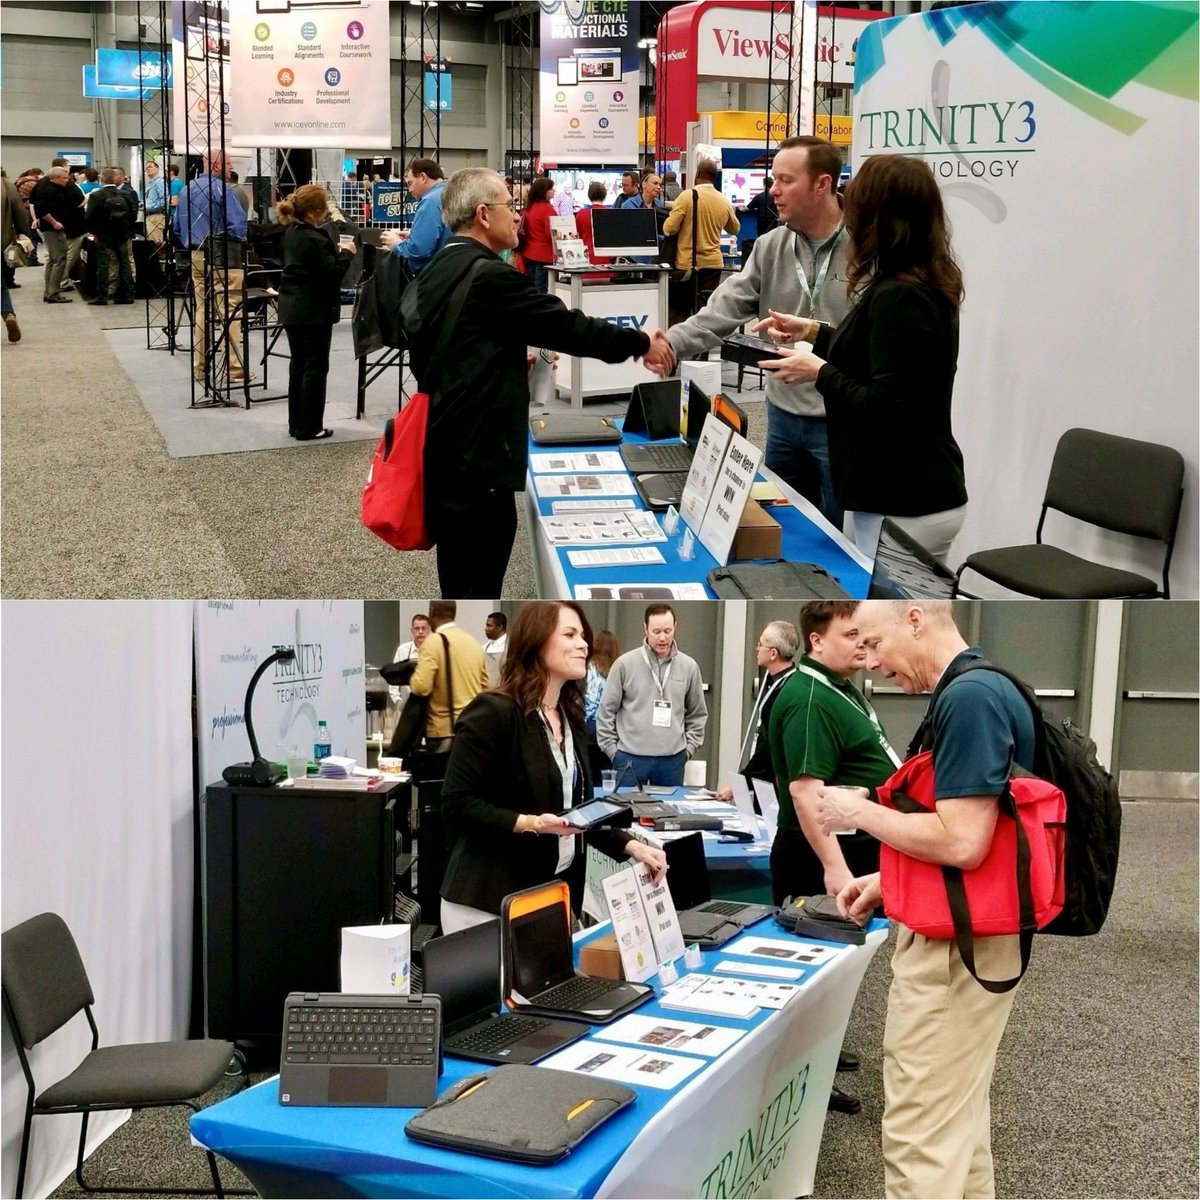 Day one of the @TCEA Convention has started! Stop by and visit us at Booth #406 and enter to win an iPad mini! #TCEA https://t.co/mxxucmKLxj